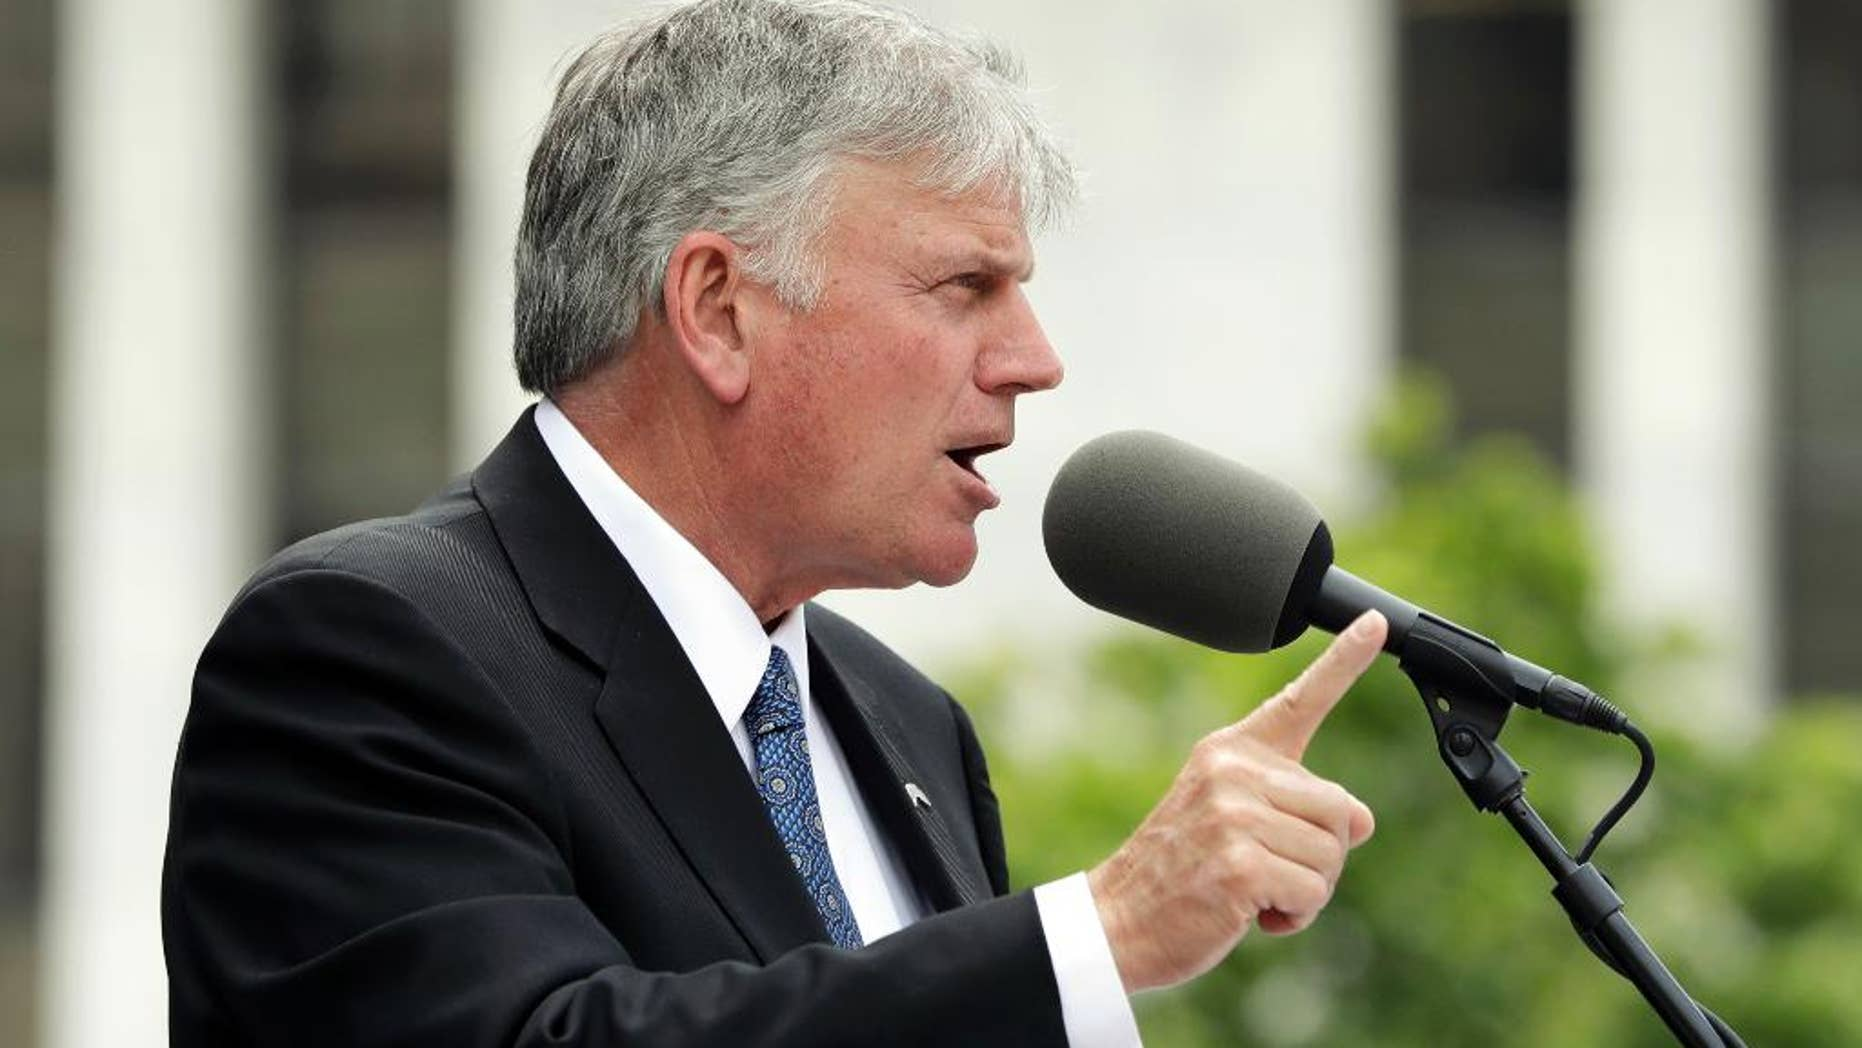 FILE - In this Thursday, Aug. 25, 2016 file photo, the Rev. Franklin Graham speaks during an election prayer rally outside the state Capitol in Albany, N.Y. Graham is scheduled to hold a mass prayer rally as part of a 50-state tour to urge evangelicals to vote, Tuesday, Aug. 30, 2016, on Boston Common. (AP Photo/Mike Groll, File)